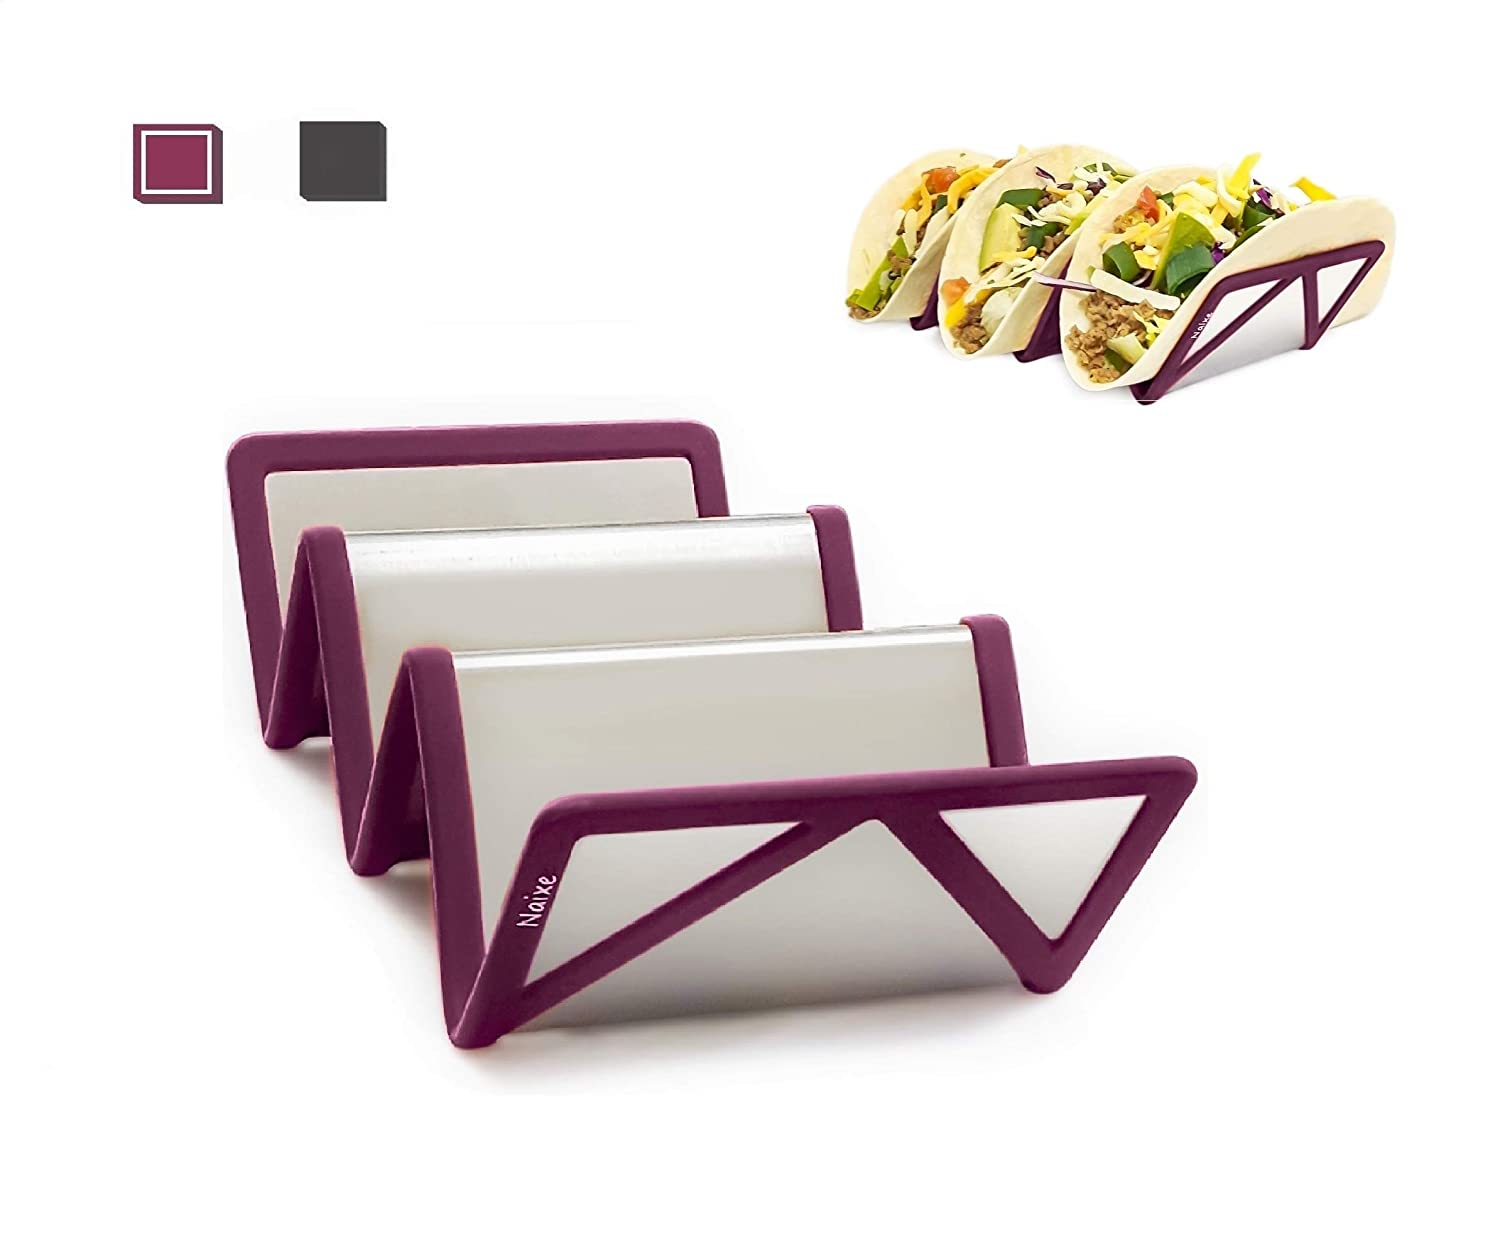 Taco Holder with Silicone Sleeve -Set of 2-Non-slip Design with Enhanced Stability -Dishwasher and Oven Safe - Made ofNon-toxic Materials -by Naixe